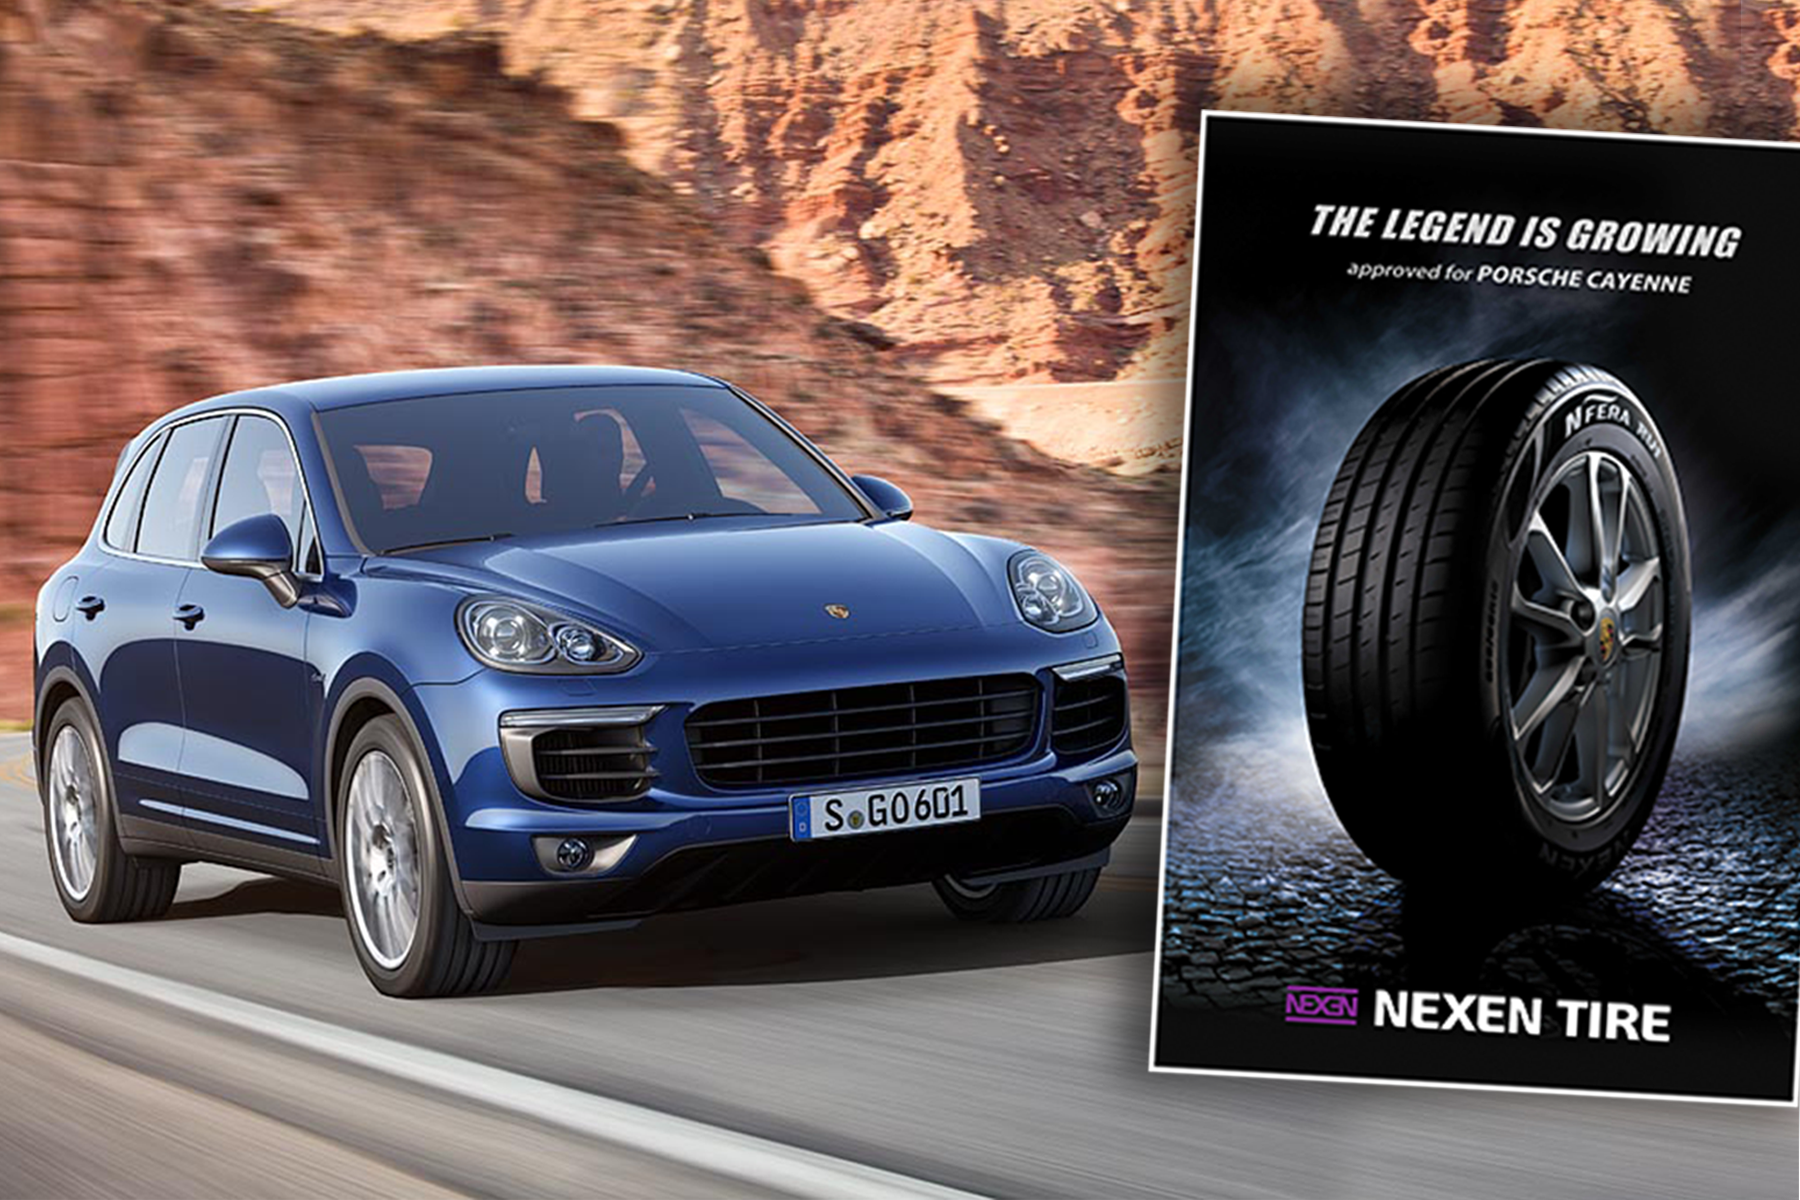 nexen tire to supply oe tyres for porsche cayenne. Black Bedroom Furniture Sets. Home Design Ideas